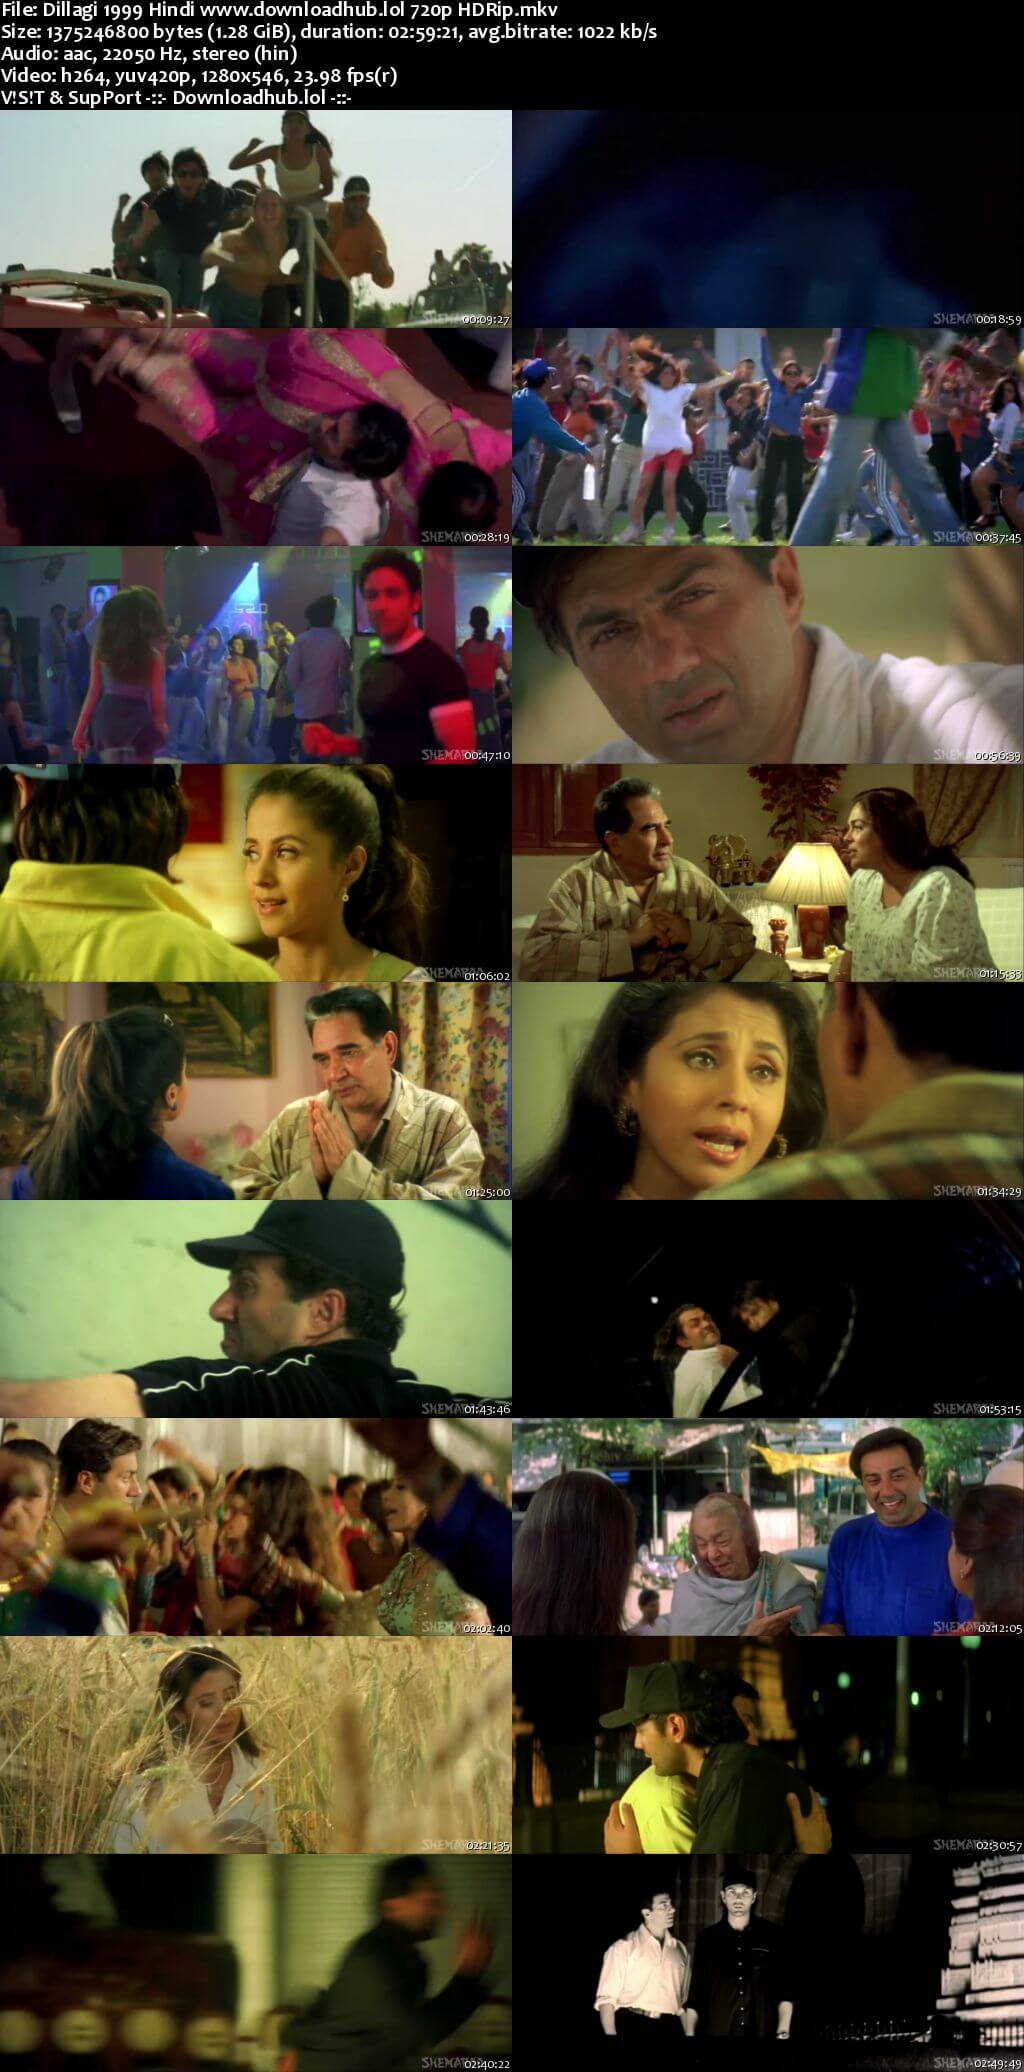 Dillagi 1999 Hindi 720p HDRip x264